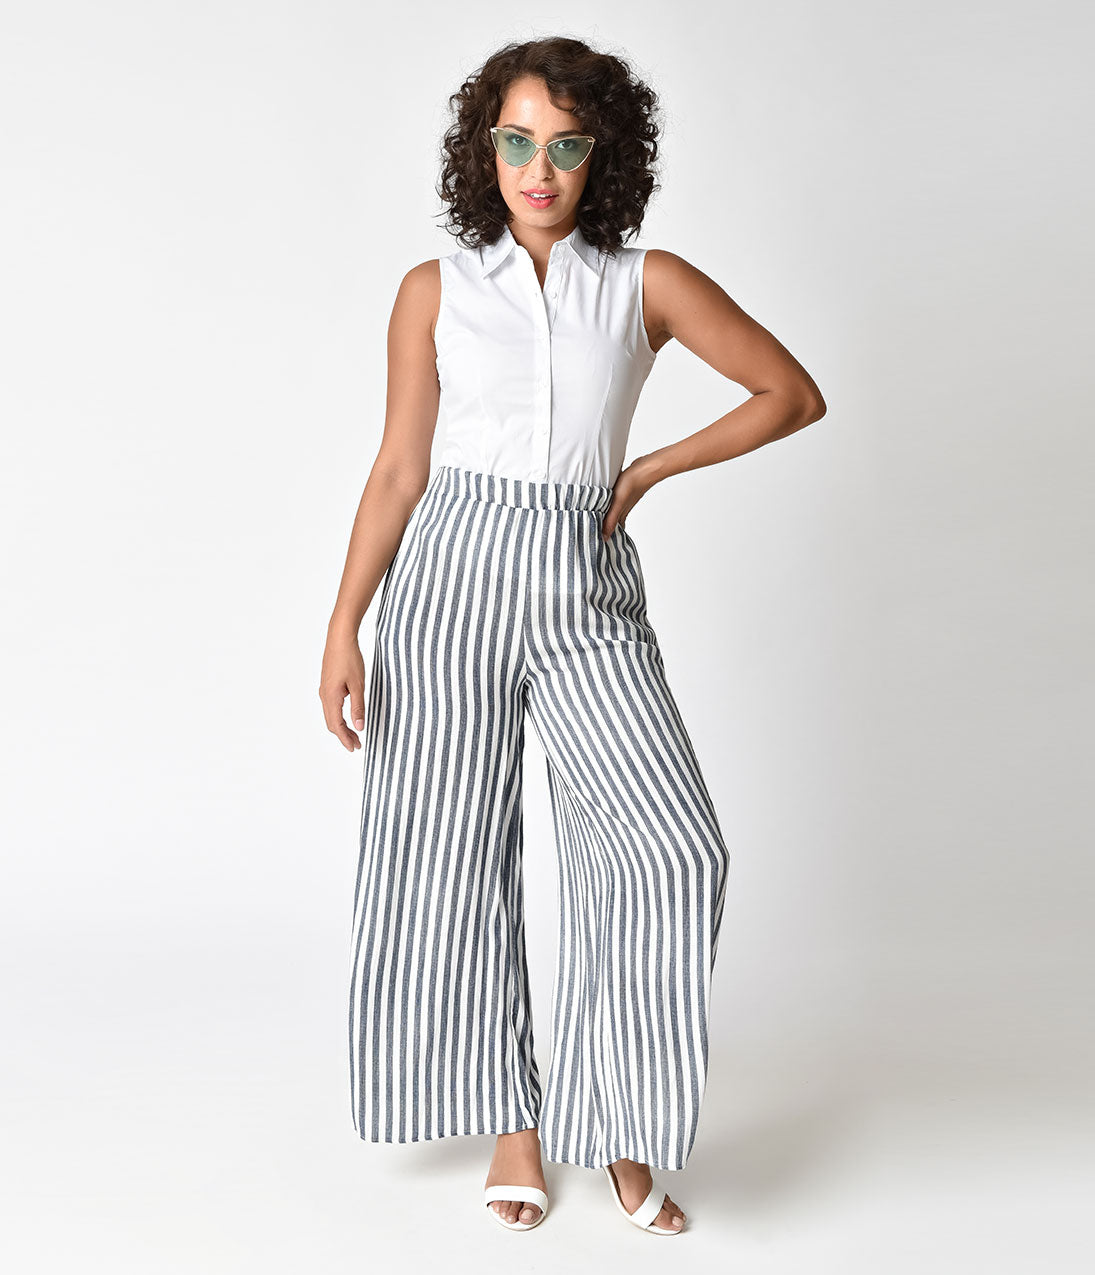 Vintage High Waisted Trousers, Sailor Pants, Jeans Retro 1940s Style Blue  White Striped High Waist Pants $30.00 AT vintagedancer.com